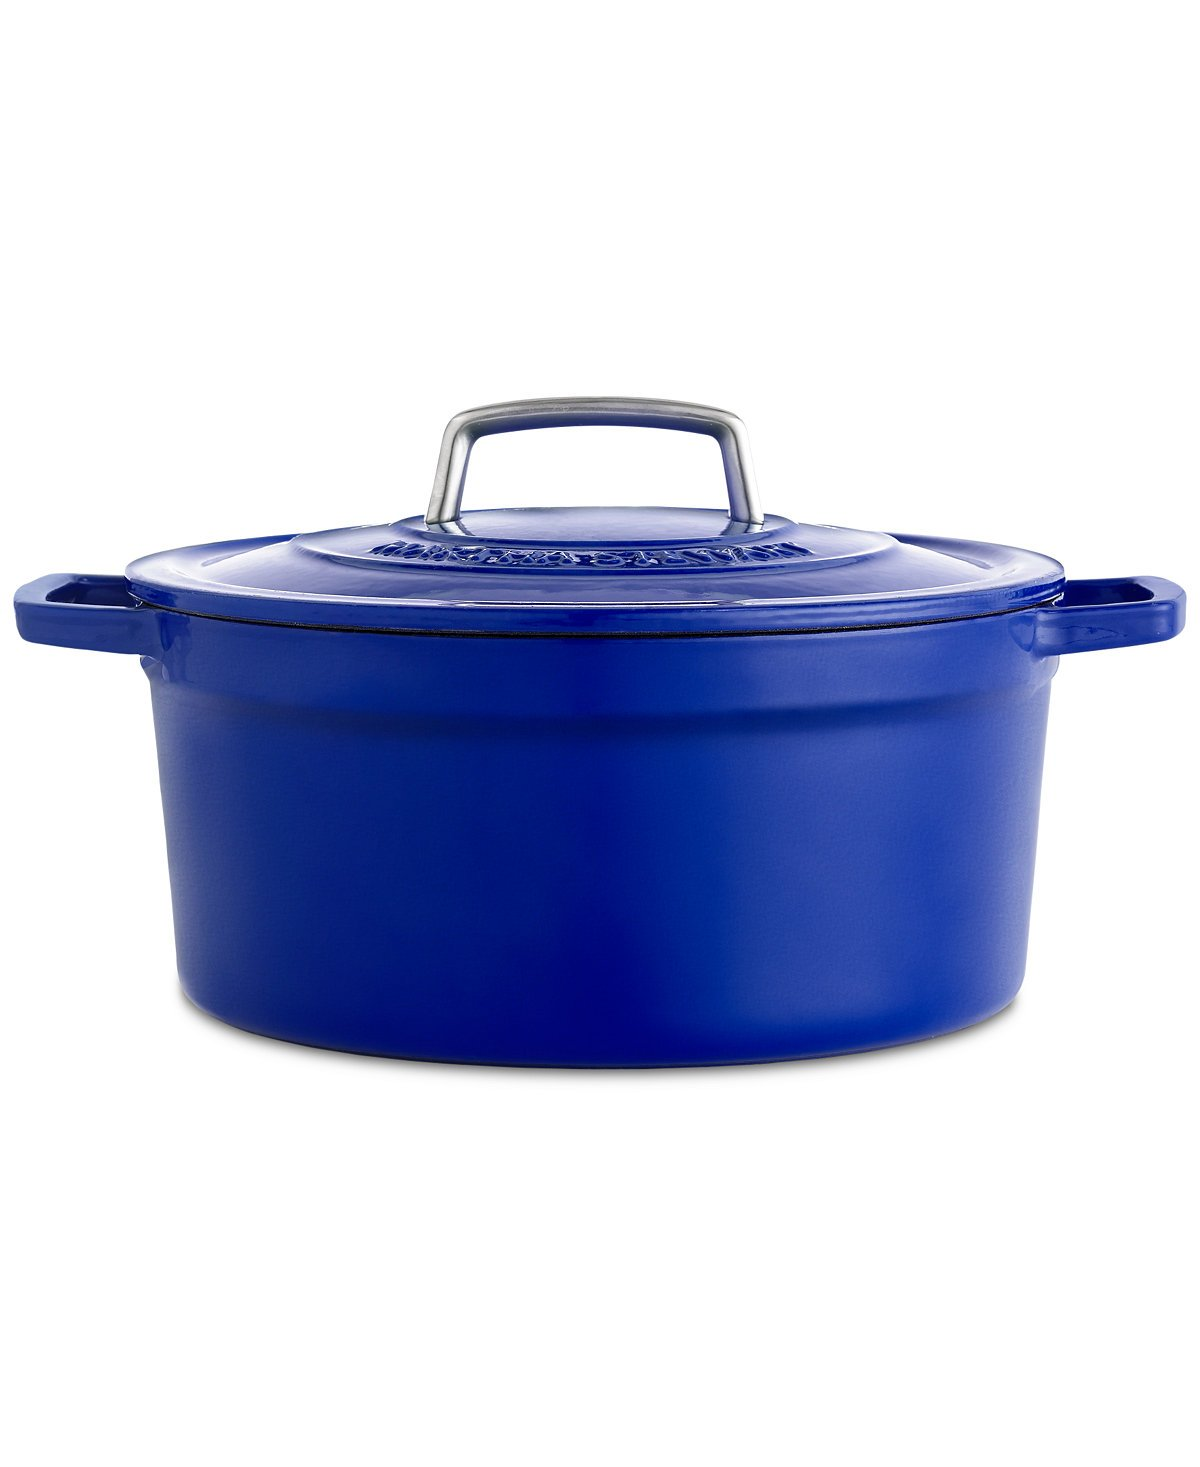 Collector's Enameled Cast Iron 8 QT. Cookware Pot For Multiuse   Exceptional Quality Cast Iron For Browning   Braising   Stewing   Casseroles & Much More   By Martha Stewart (Indigo)